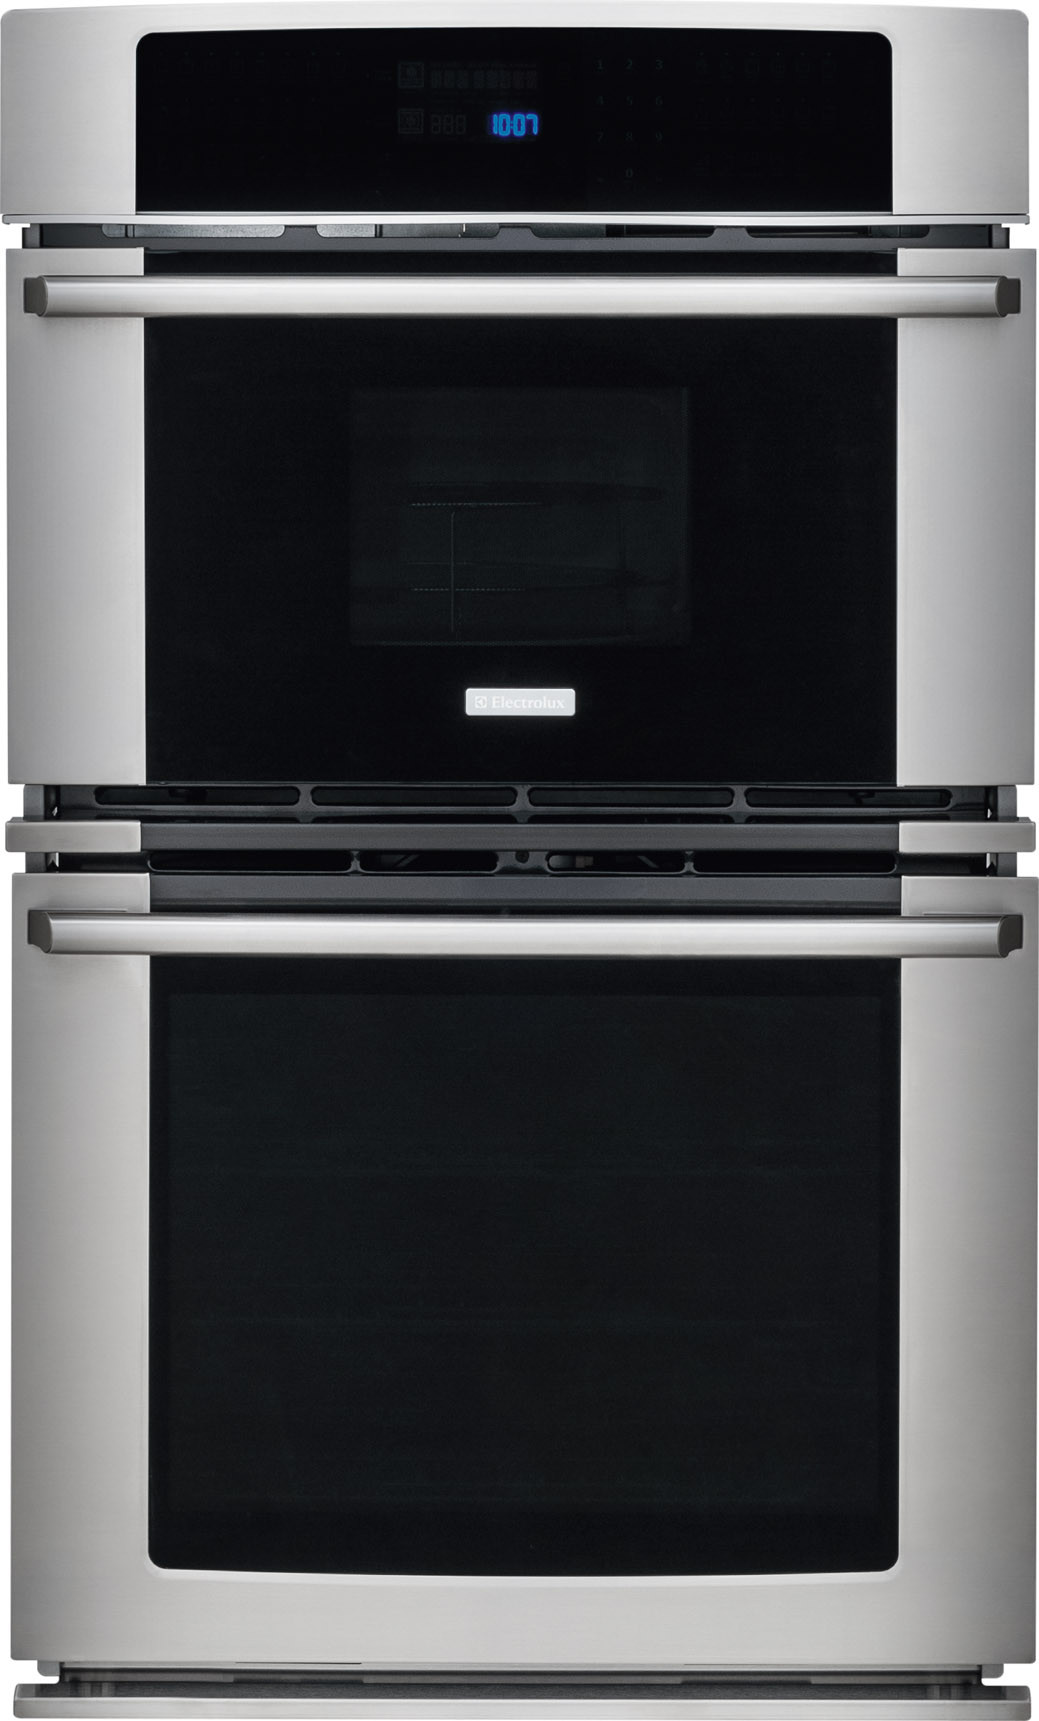 Electric Ovens For Sale Electrolux Wave Touch Series 30 Inch Double Electric Wall Oven